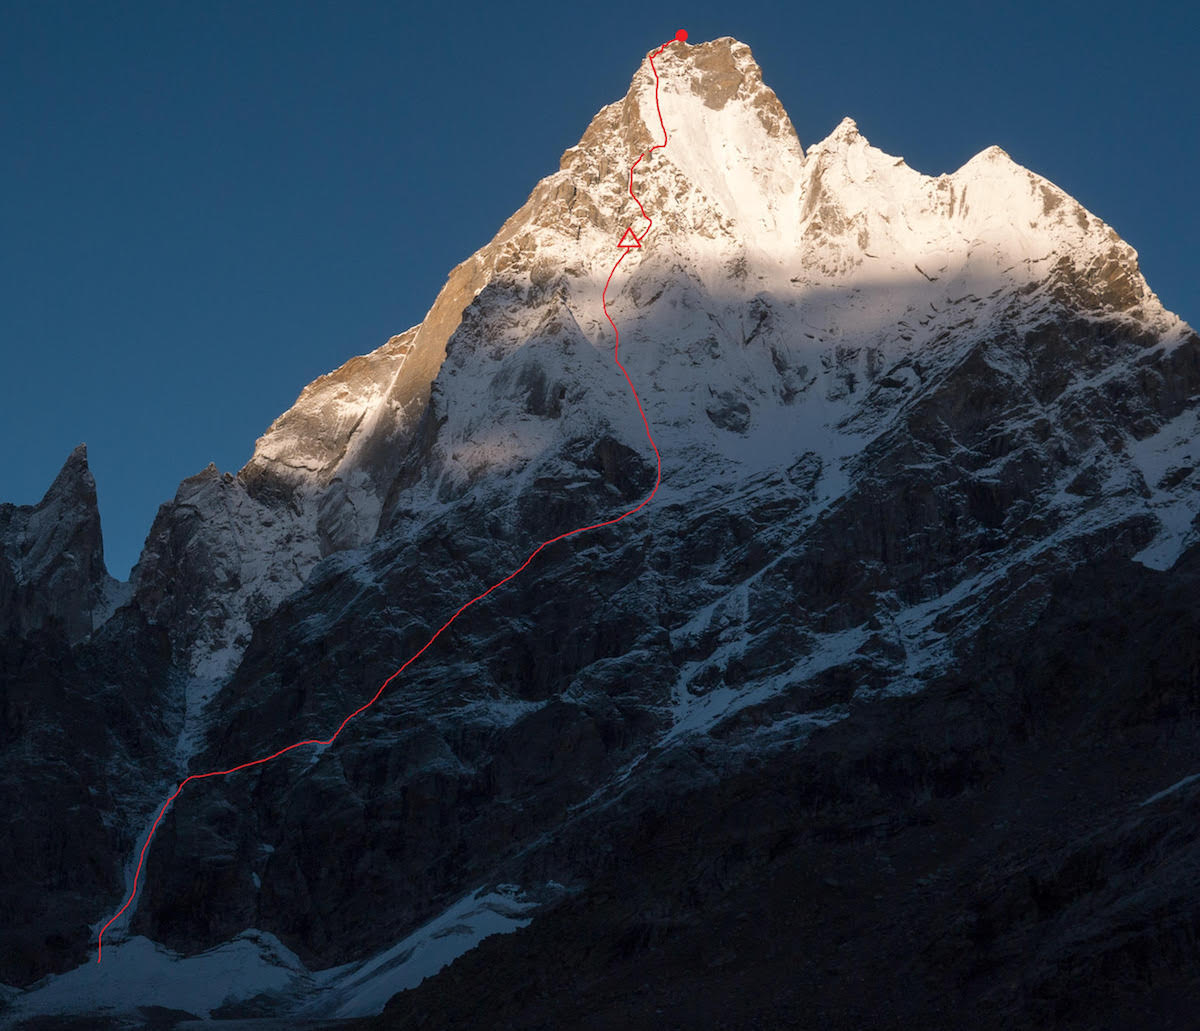 The northeast face of Cerro Kishtwar (6173m) with All Izz Well (VI WI5 M6, 1500m) marked in red with the team's first bivy site. [Photo] Genki Narumi, Yusuke Sato and Hiroki Yamamoto collection